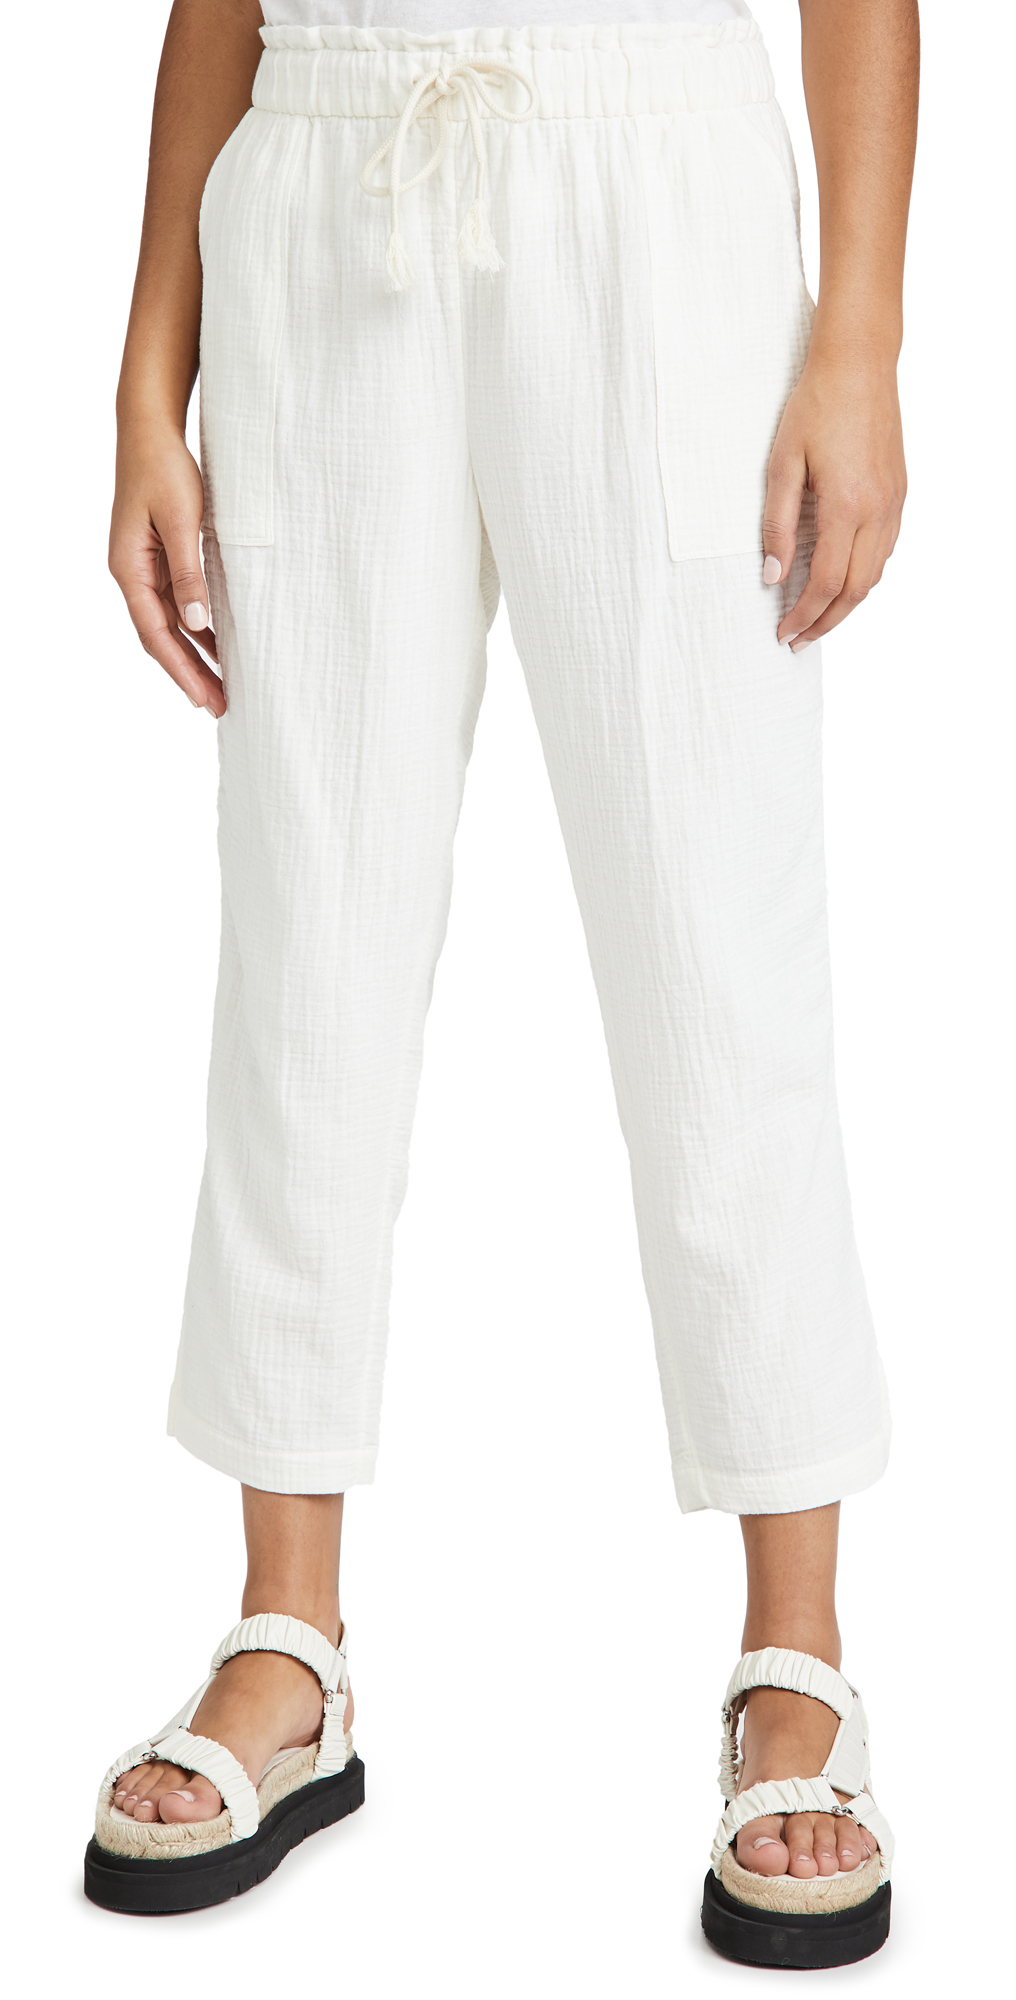 Madewell New Fiji Pants